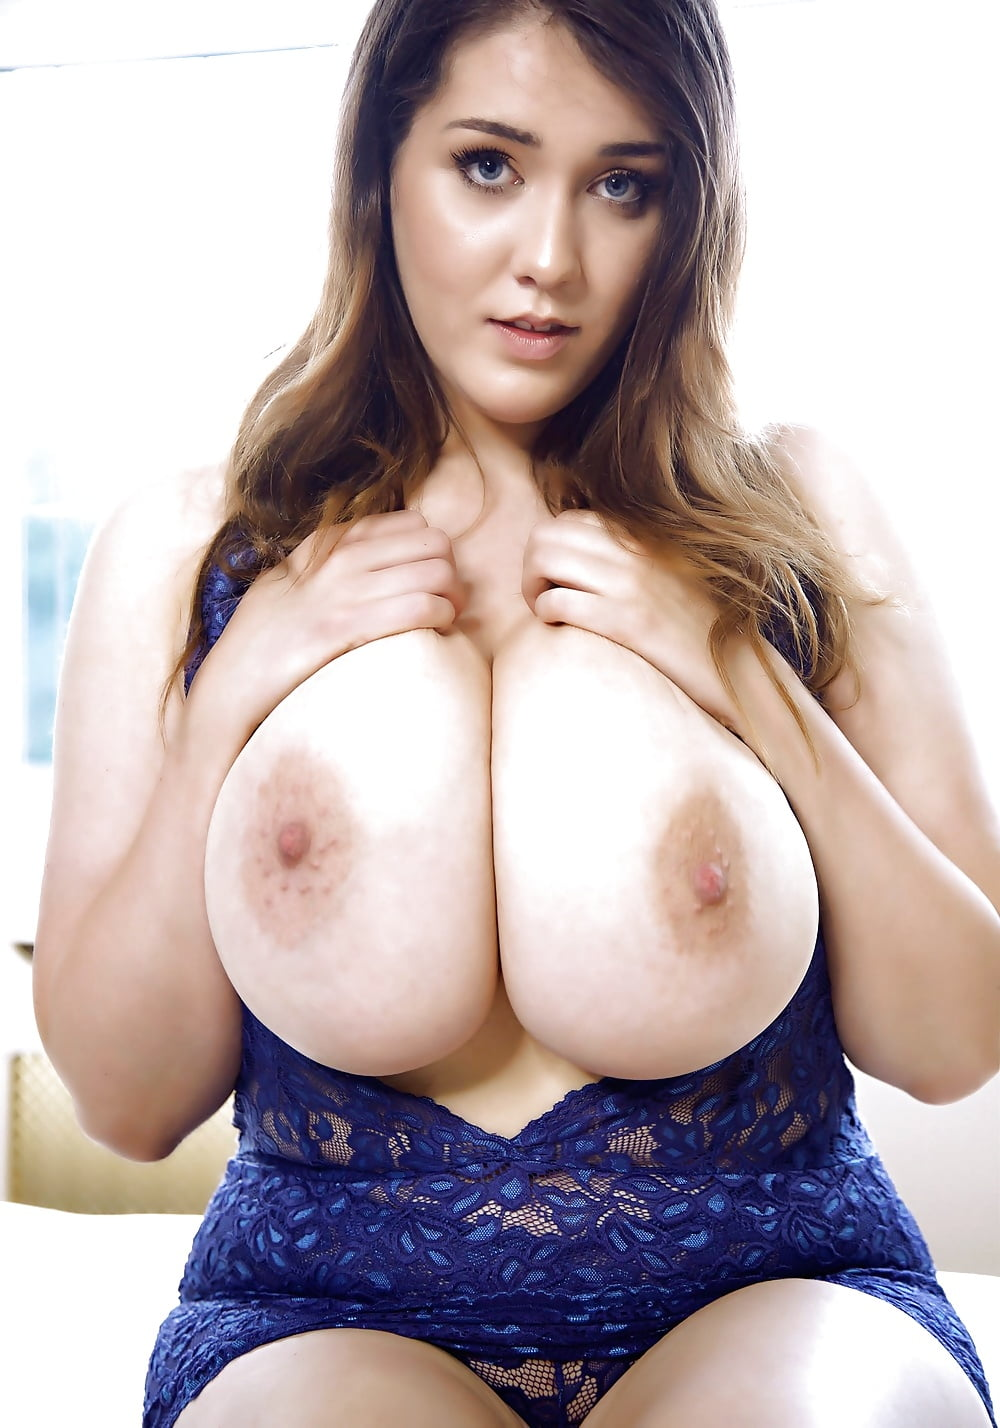 Massive natural tits pornhub-9018